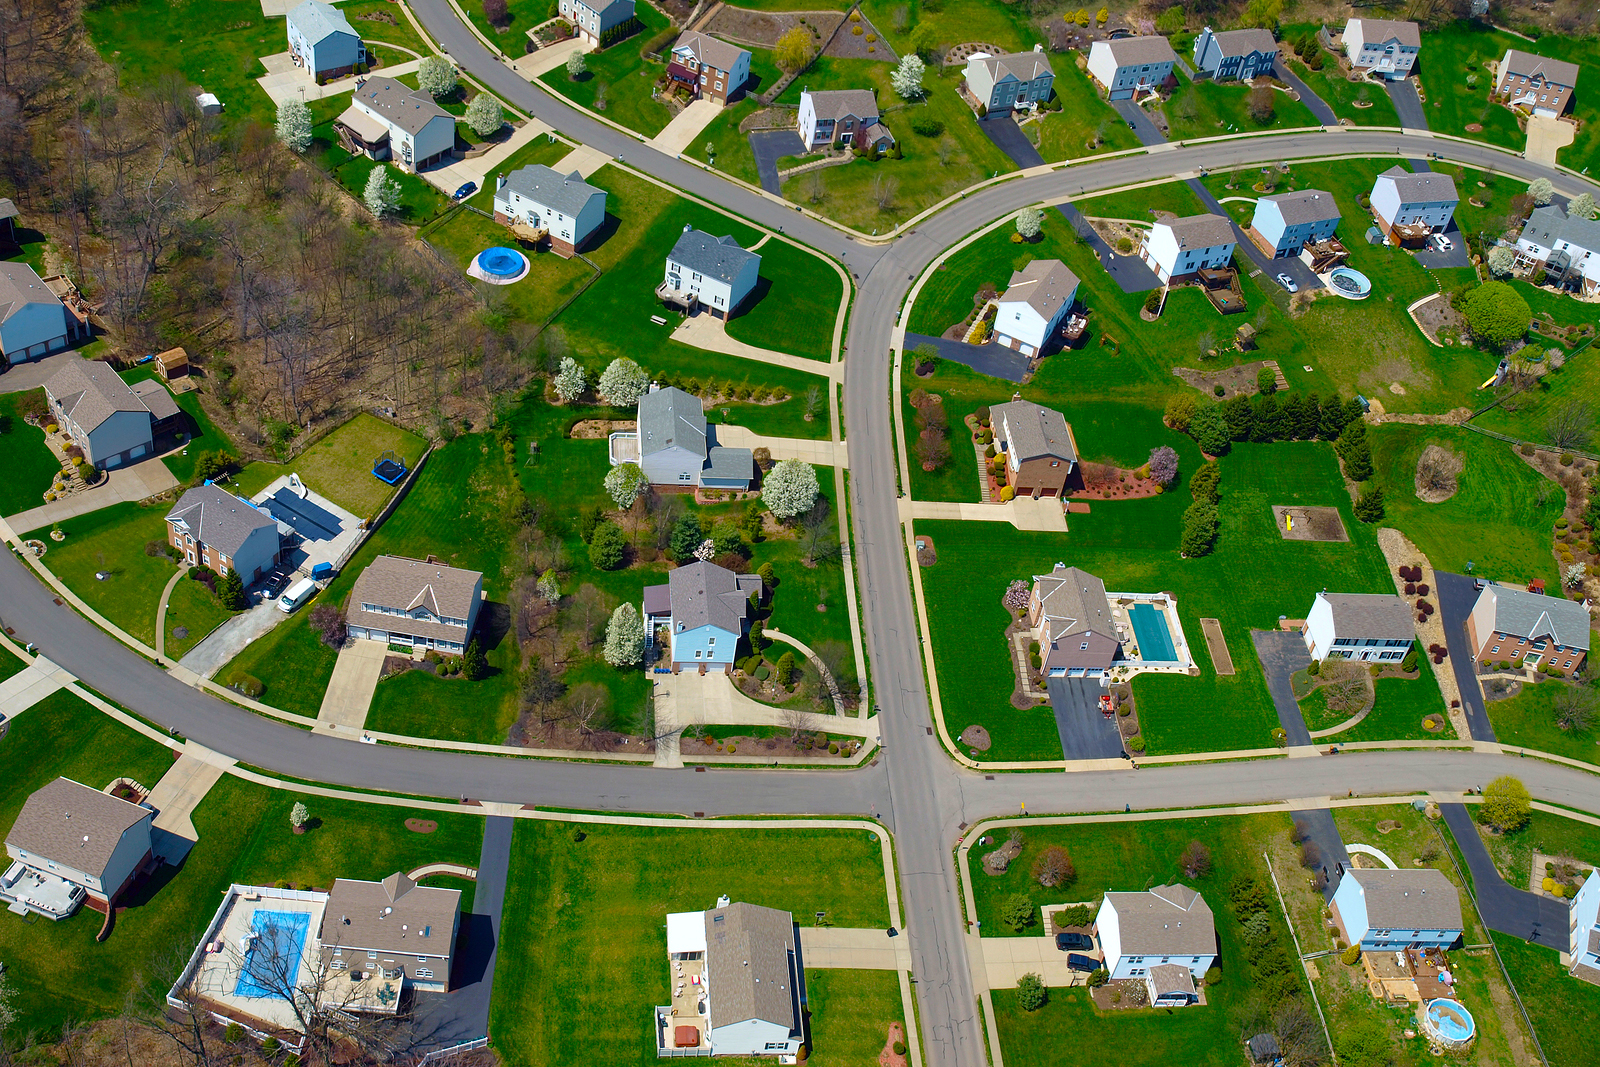 Aerial view of a Midwest suburb in the summer